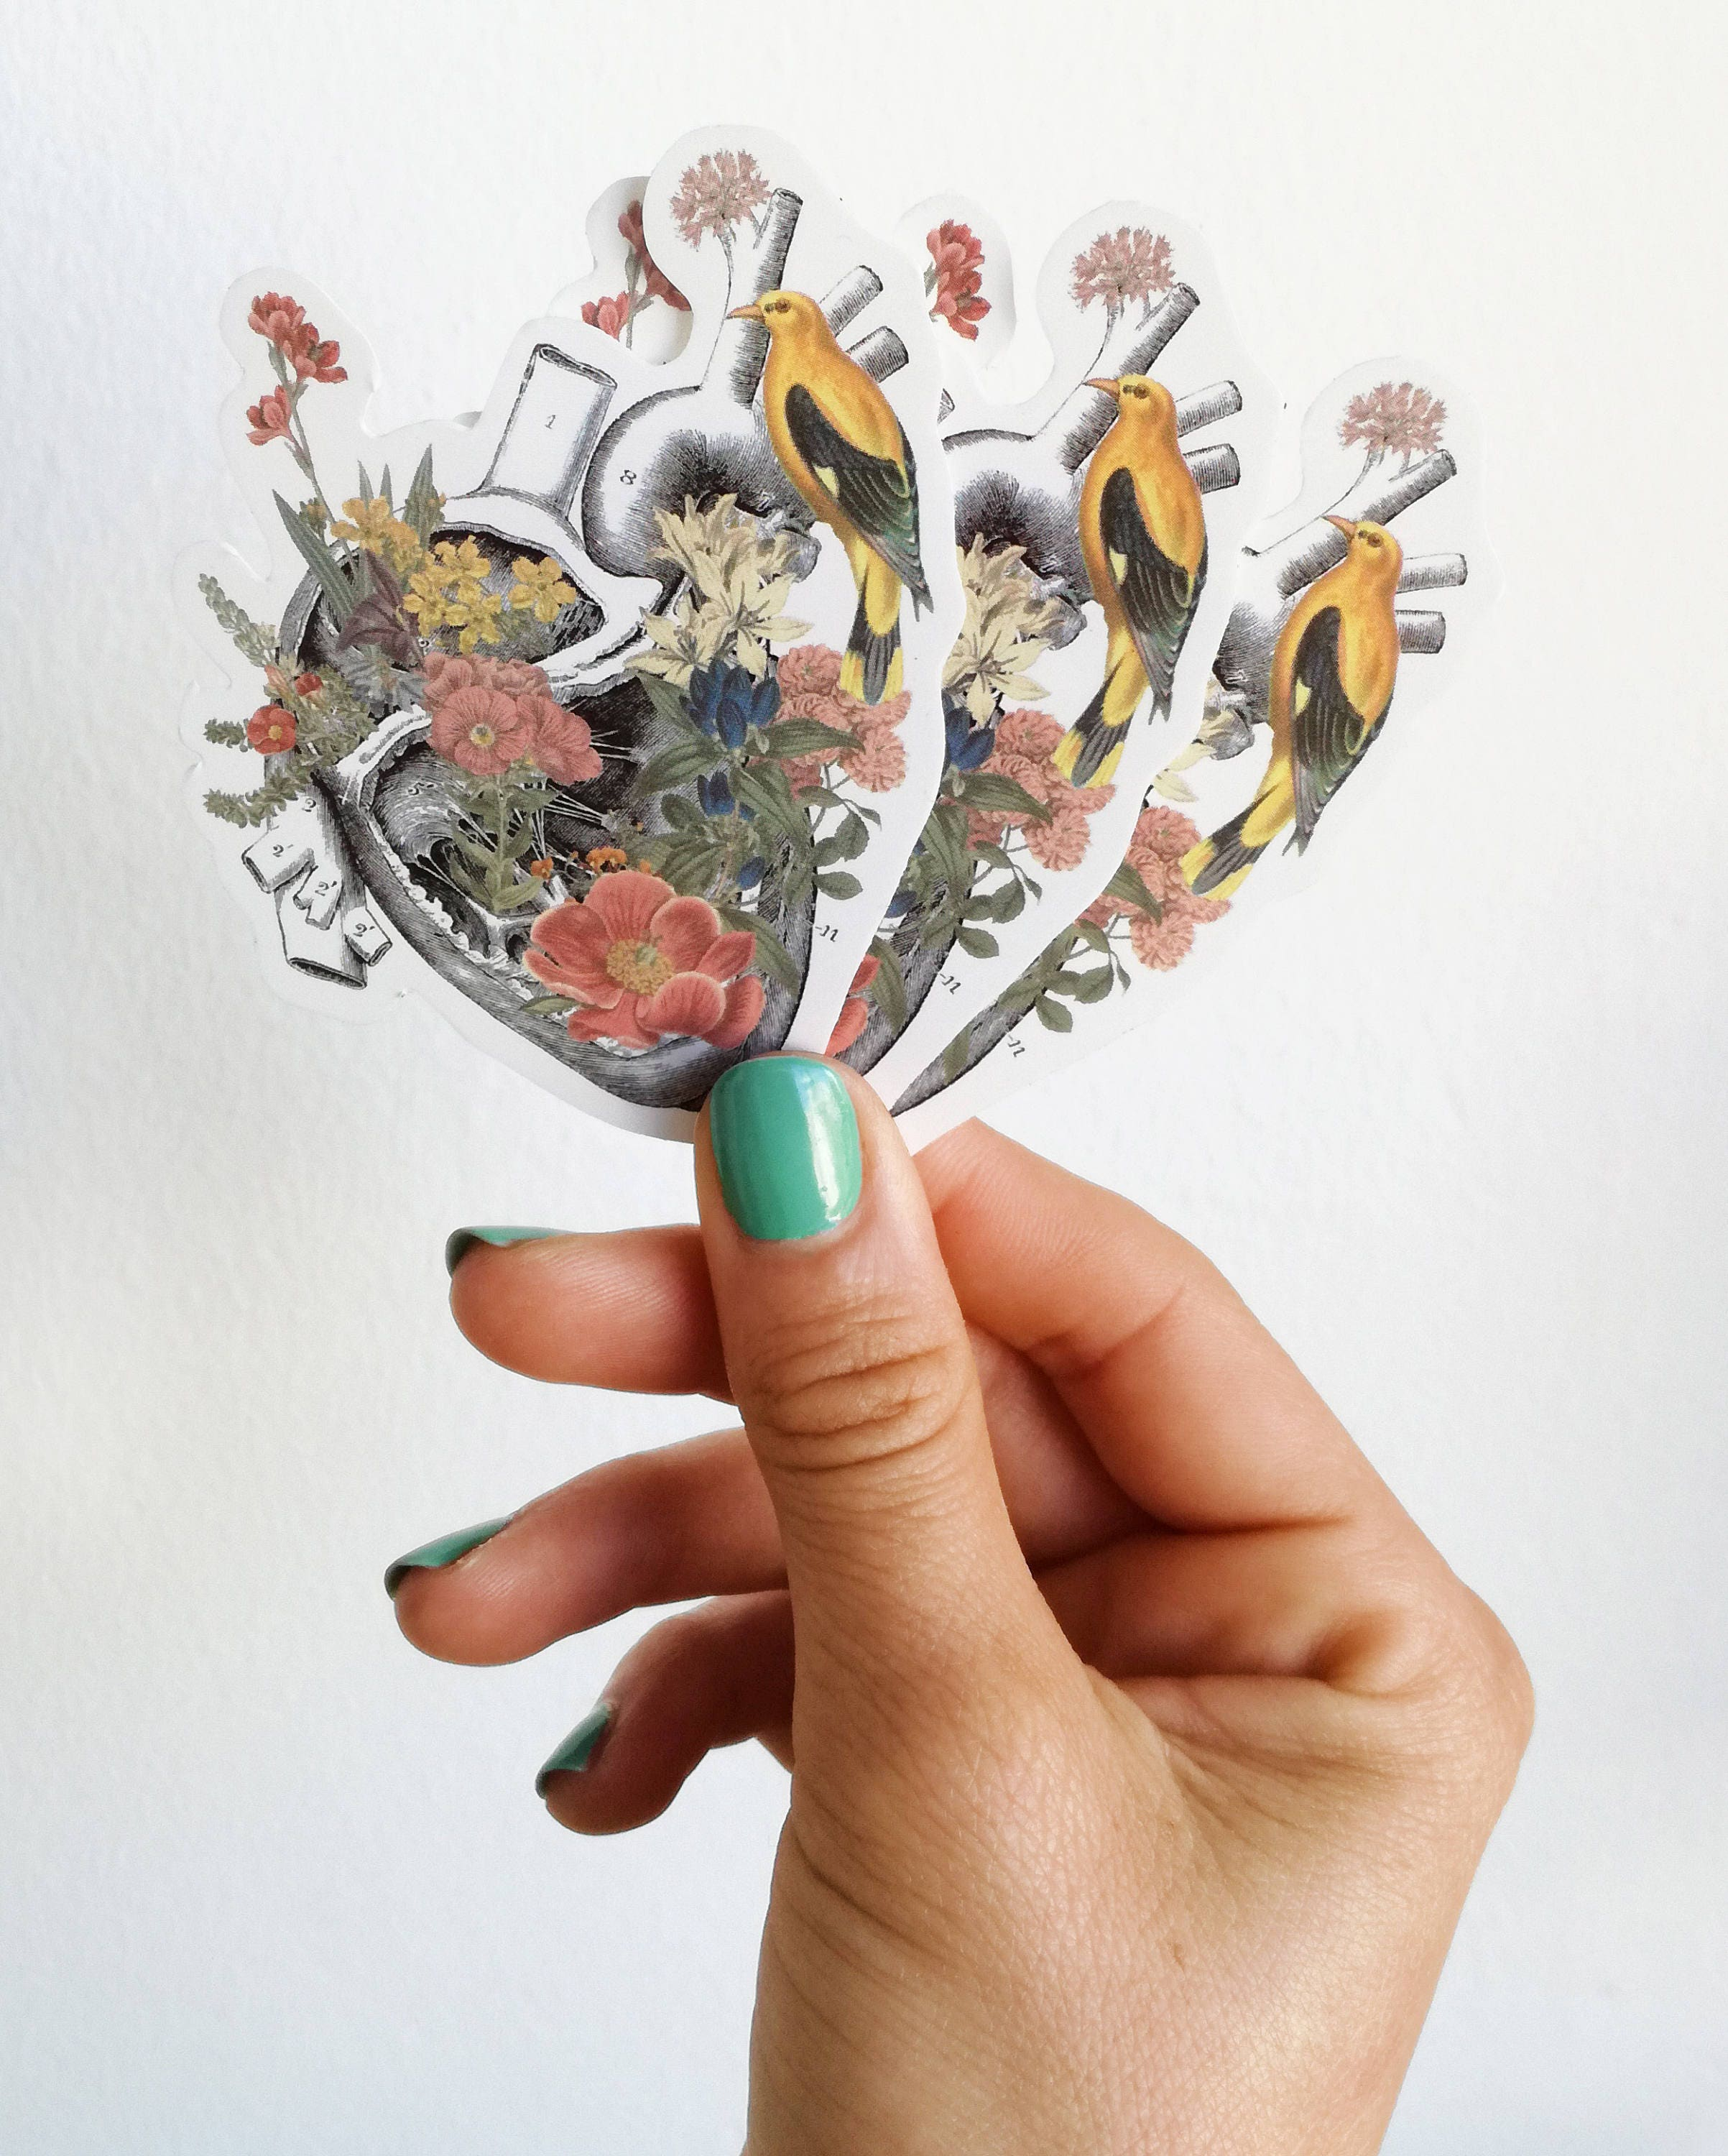 Human Anatomy Heart With Yellow Bird And Flowers Stickers Stc006